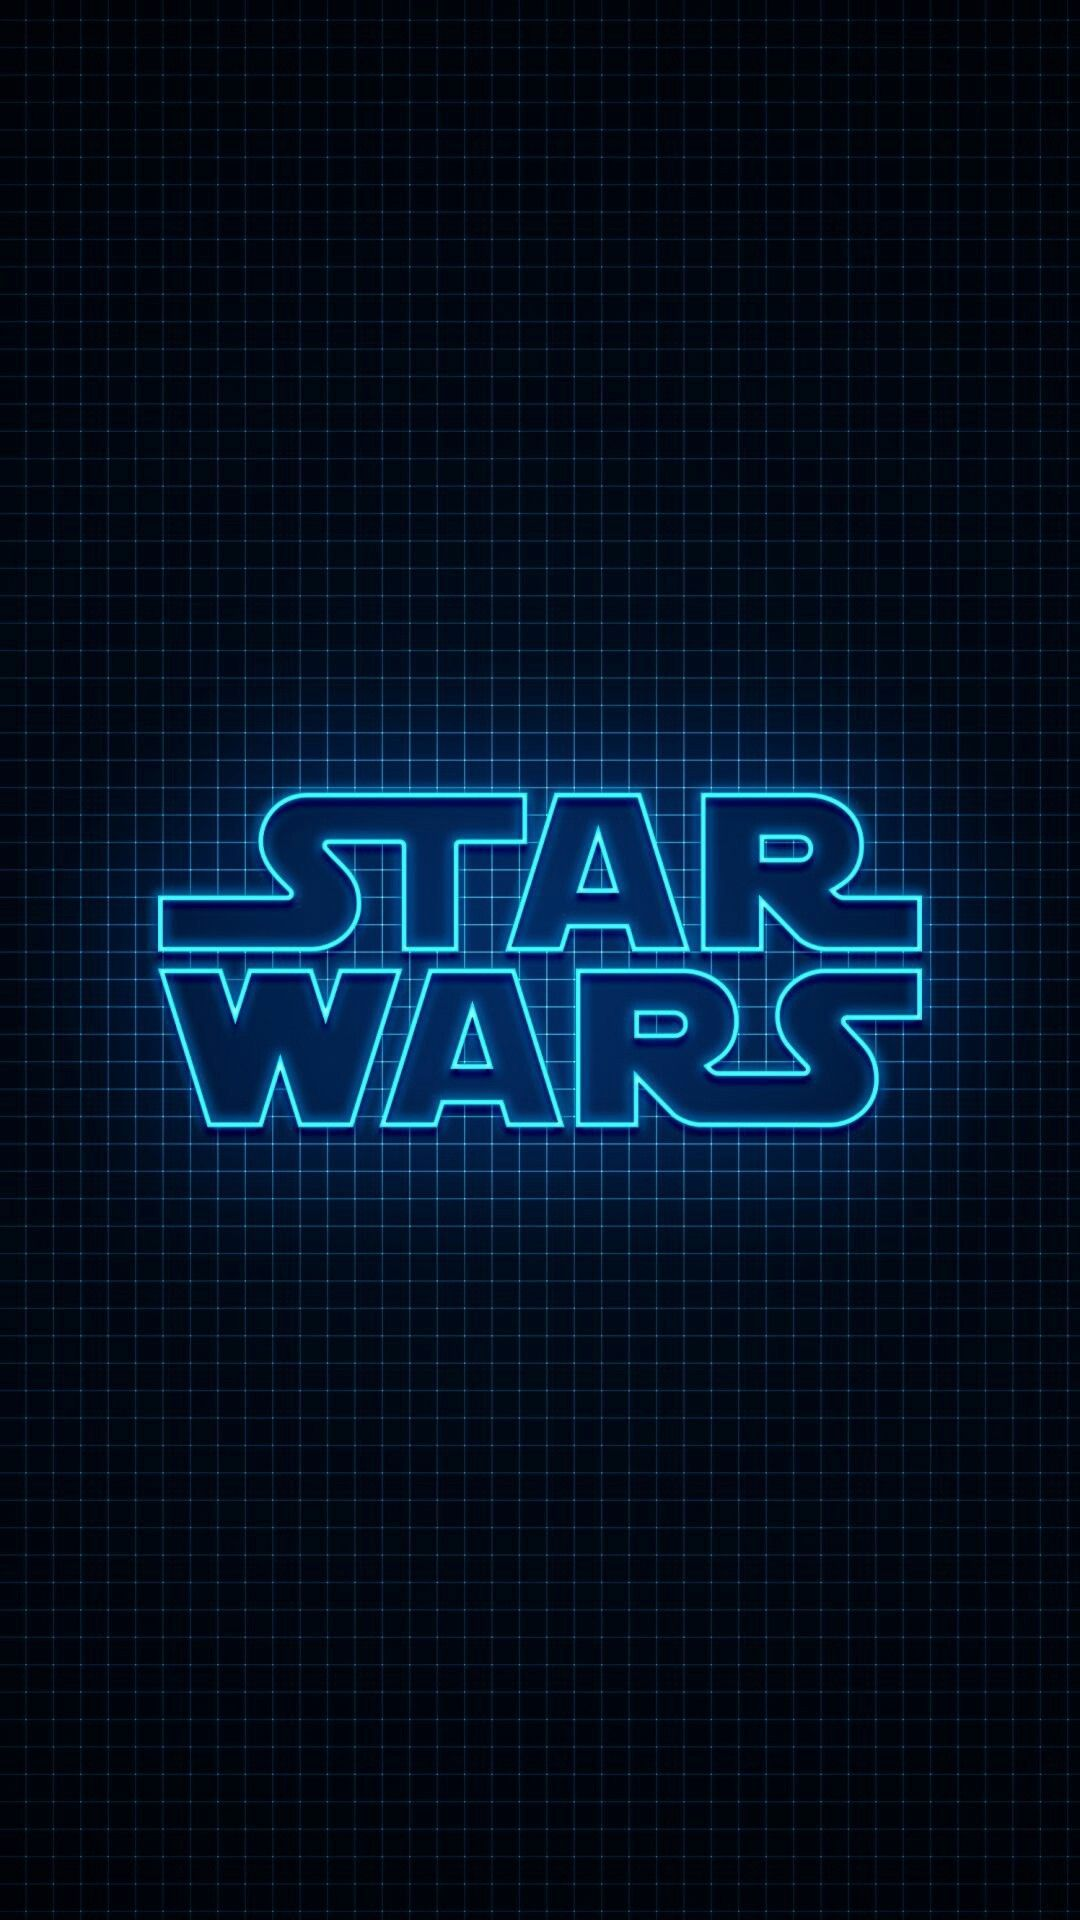 Star Wars Neon Wallpapers Top Free Star Wars Neon Backgrounds Wallpaperaccess